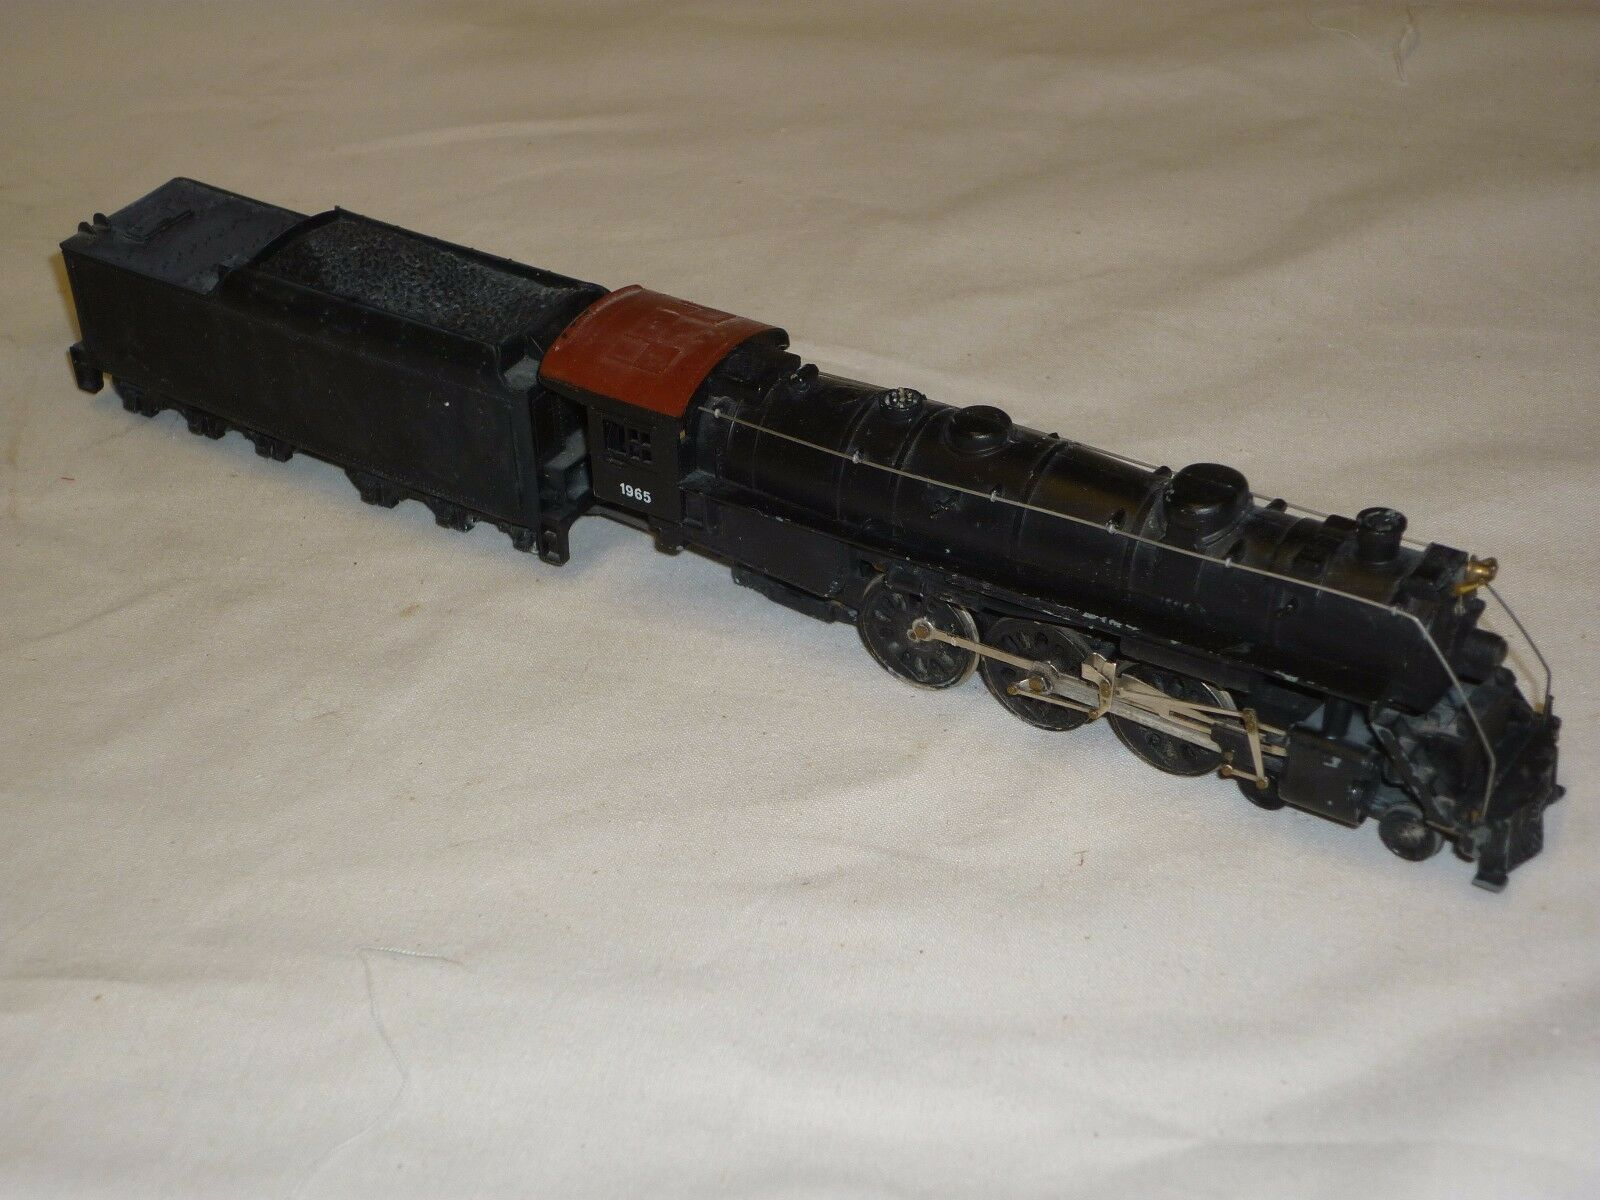 A used  American loco and tender, possible a Mantra 4-6-2 Pacific. un tested.